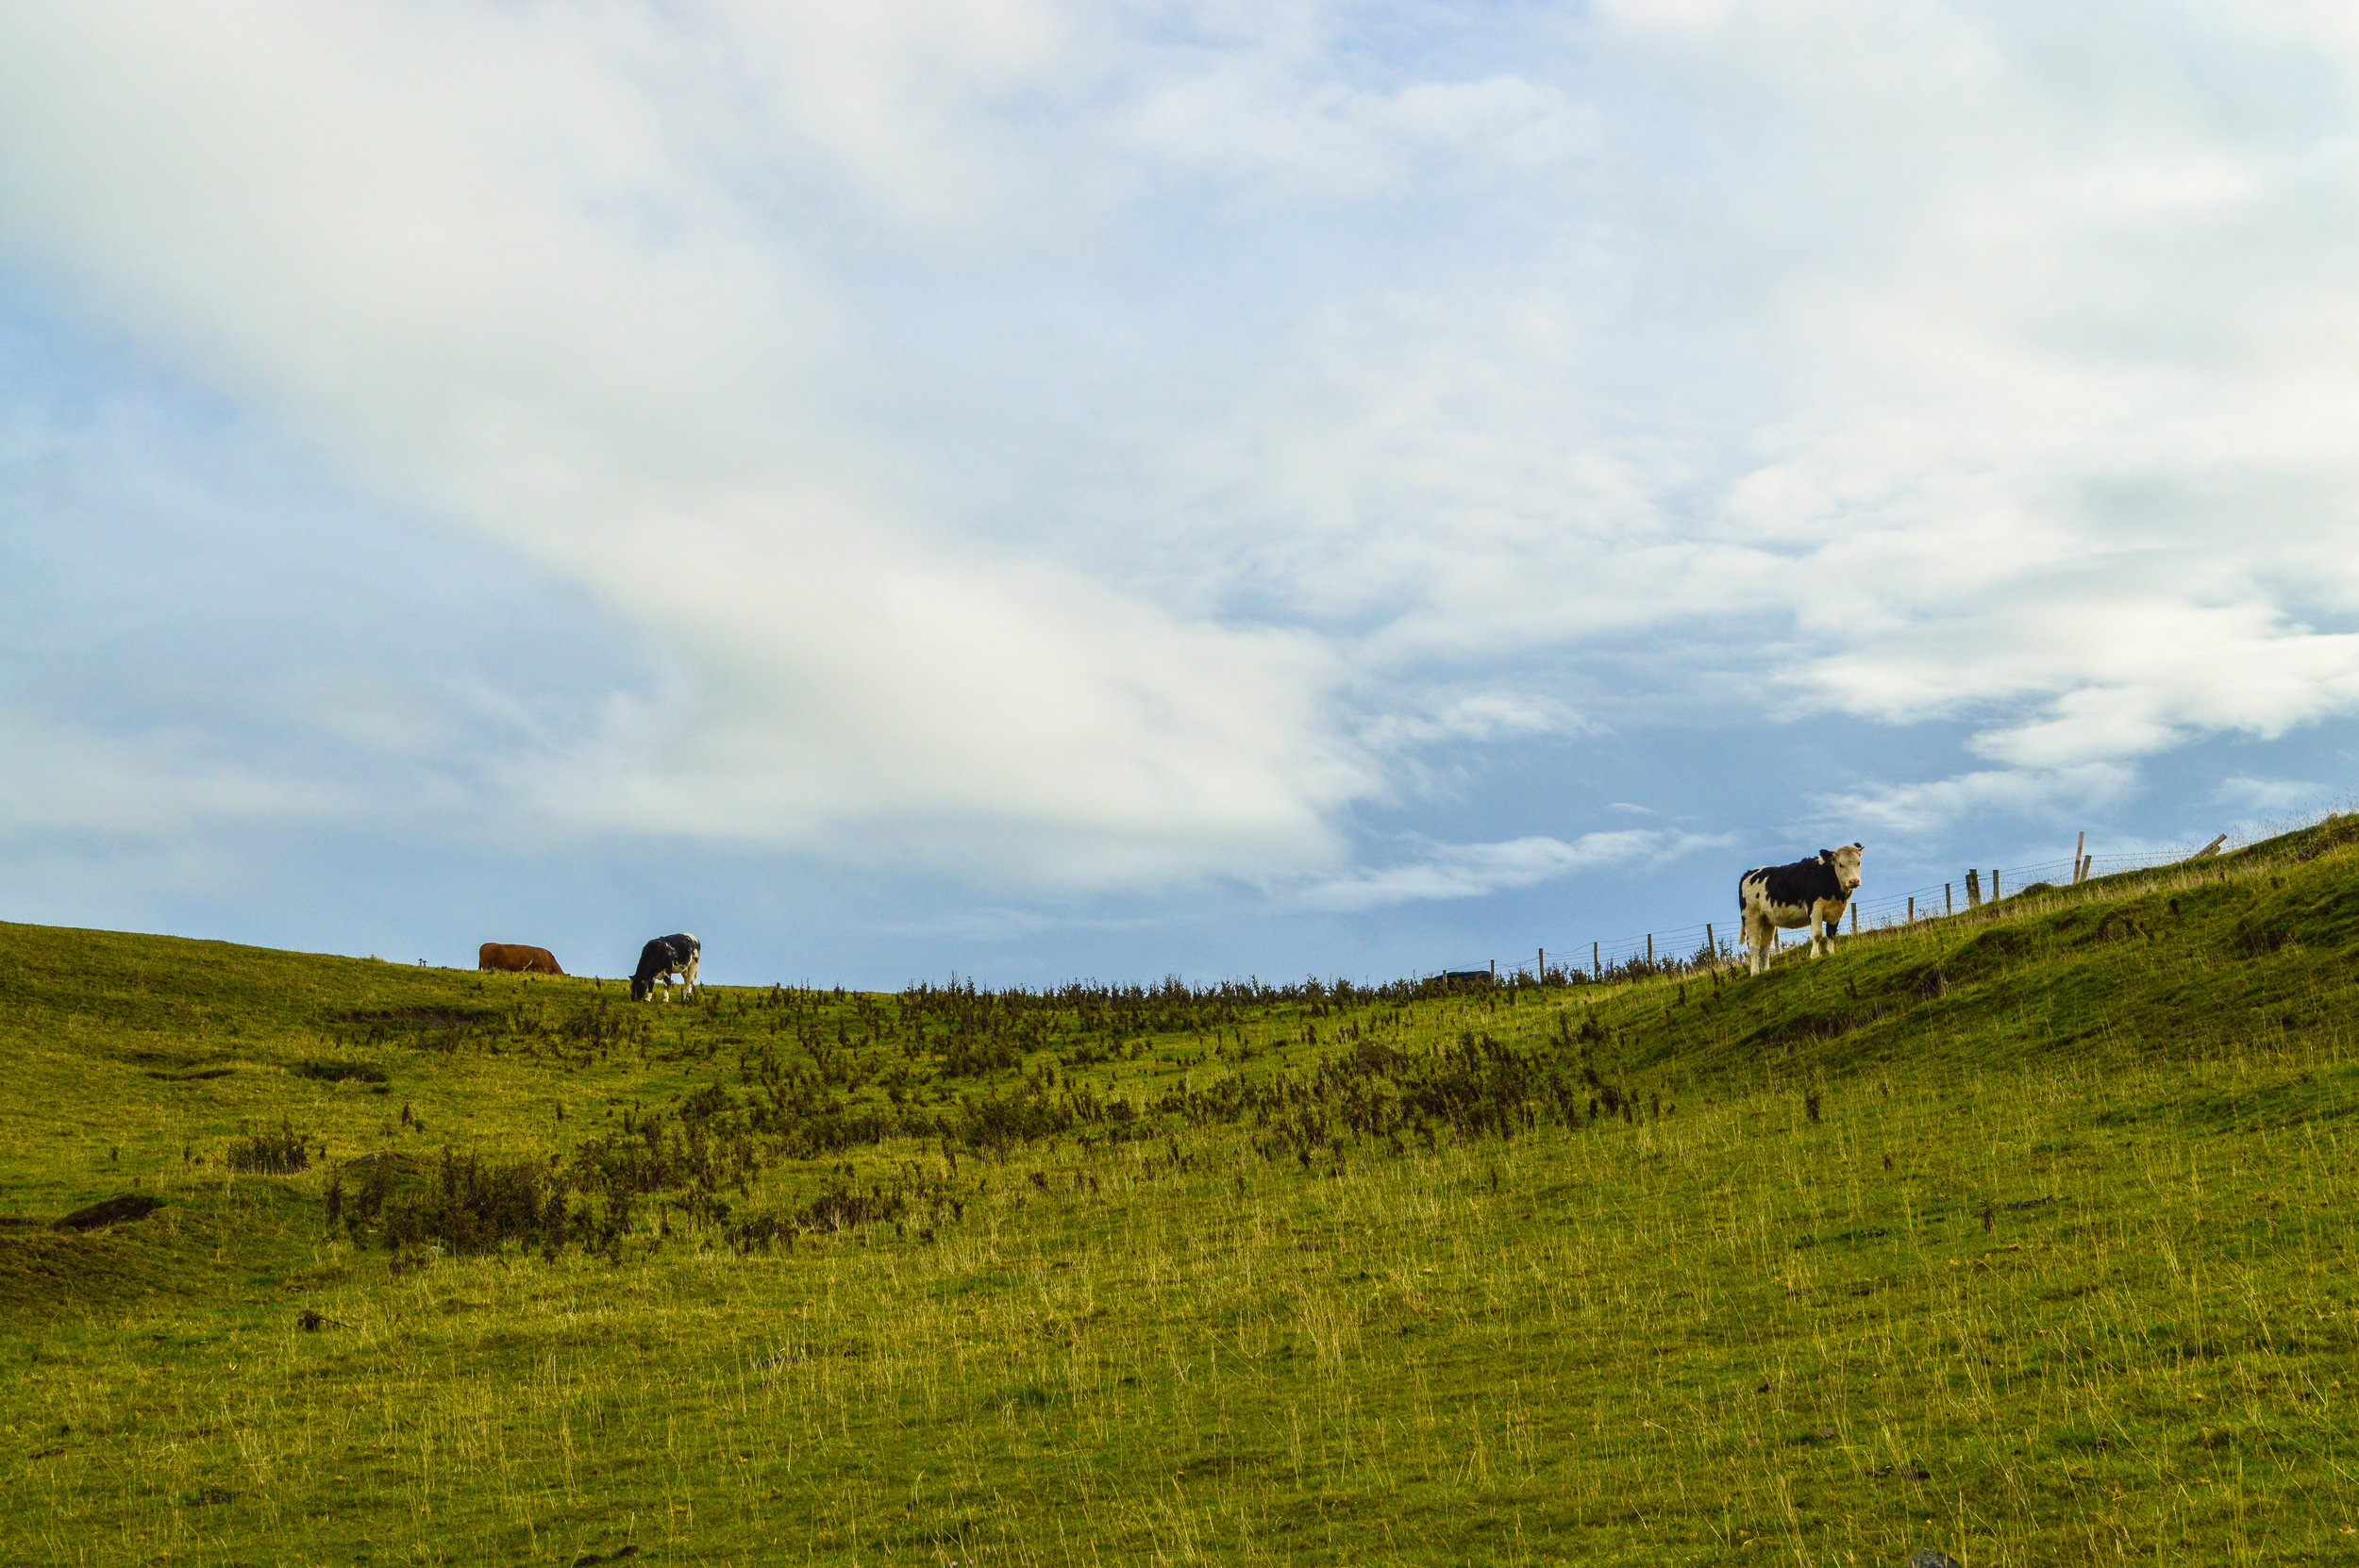 Welsh Cows (2014)